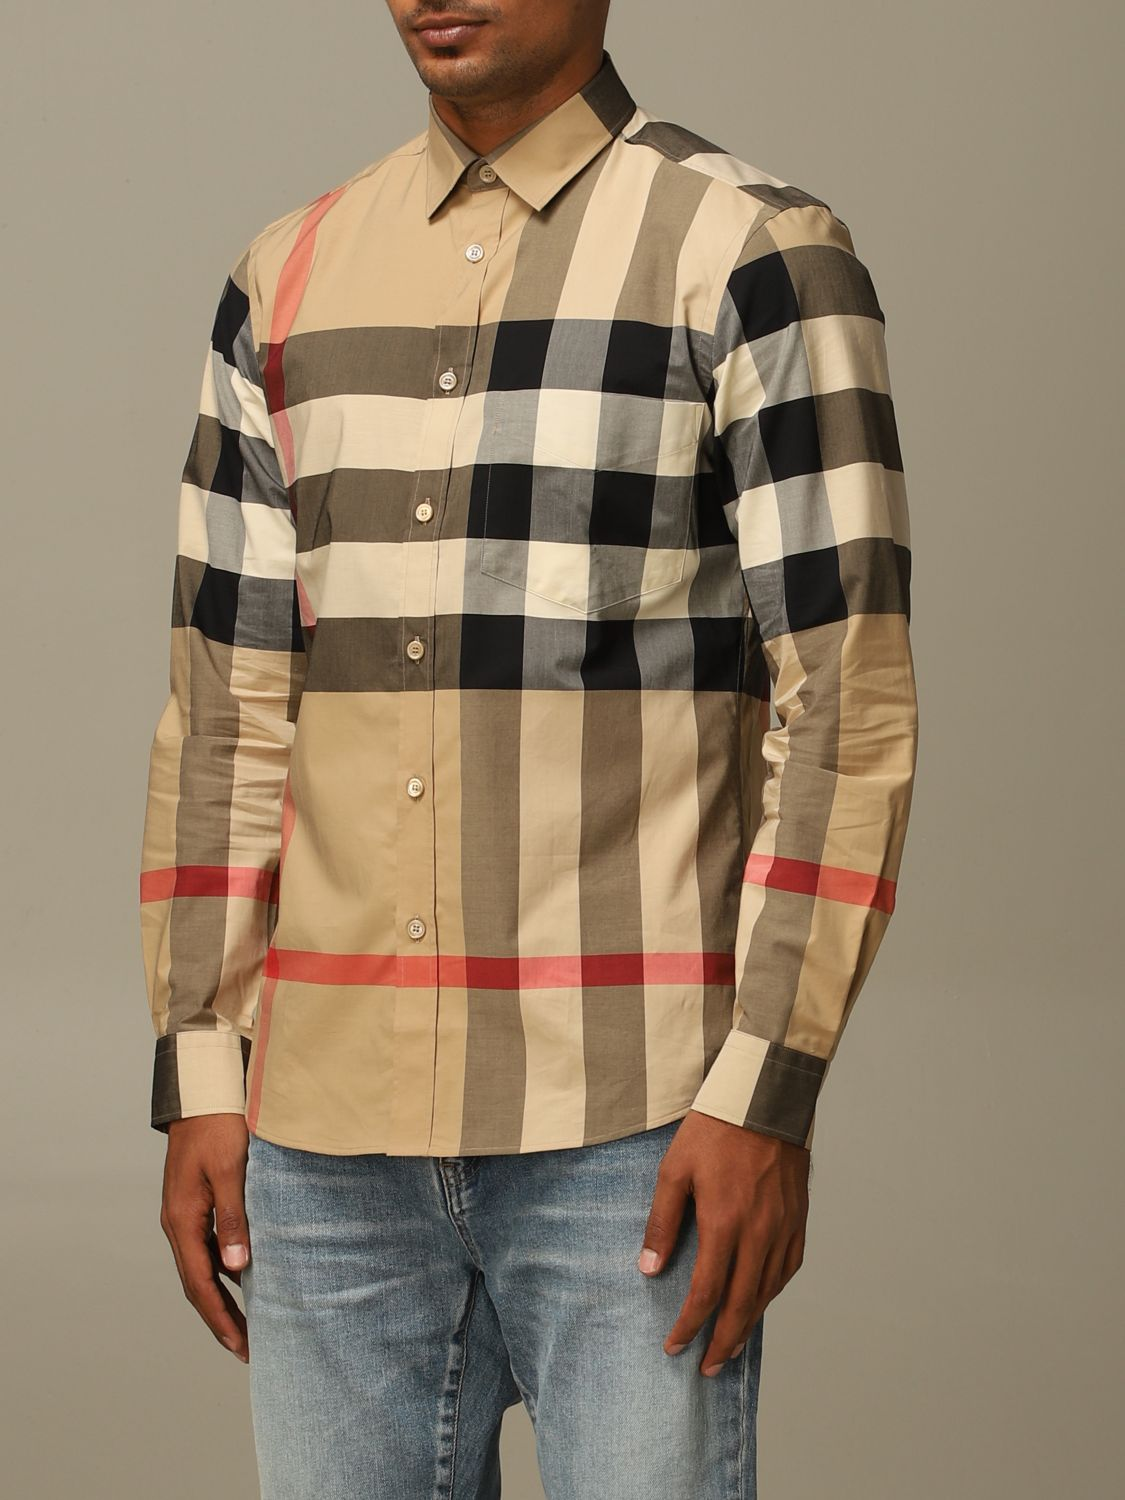 Shirt Burberry: Somerton Burberry shirt in stretch cotton poplin with check pattern beige 3